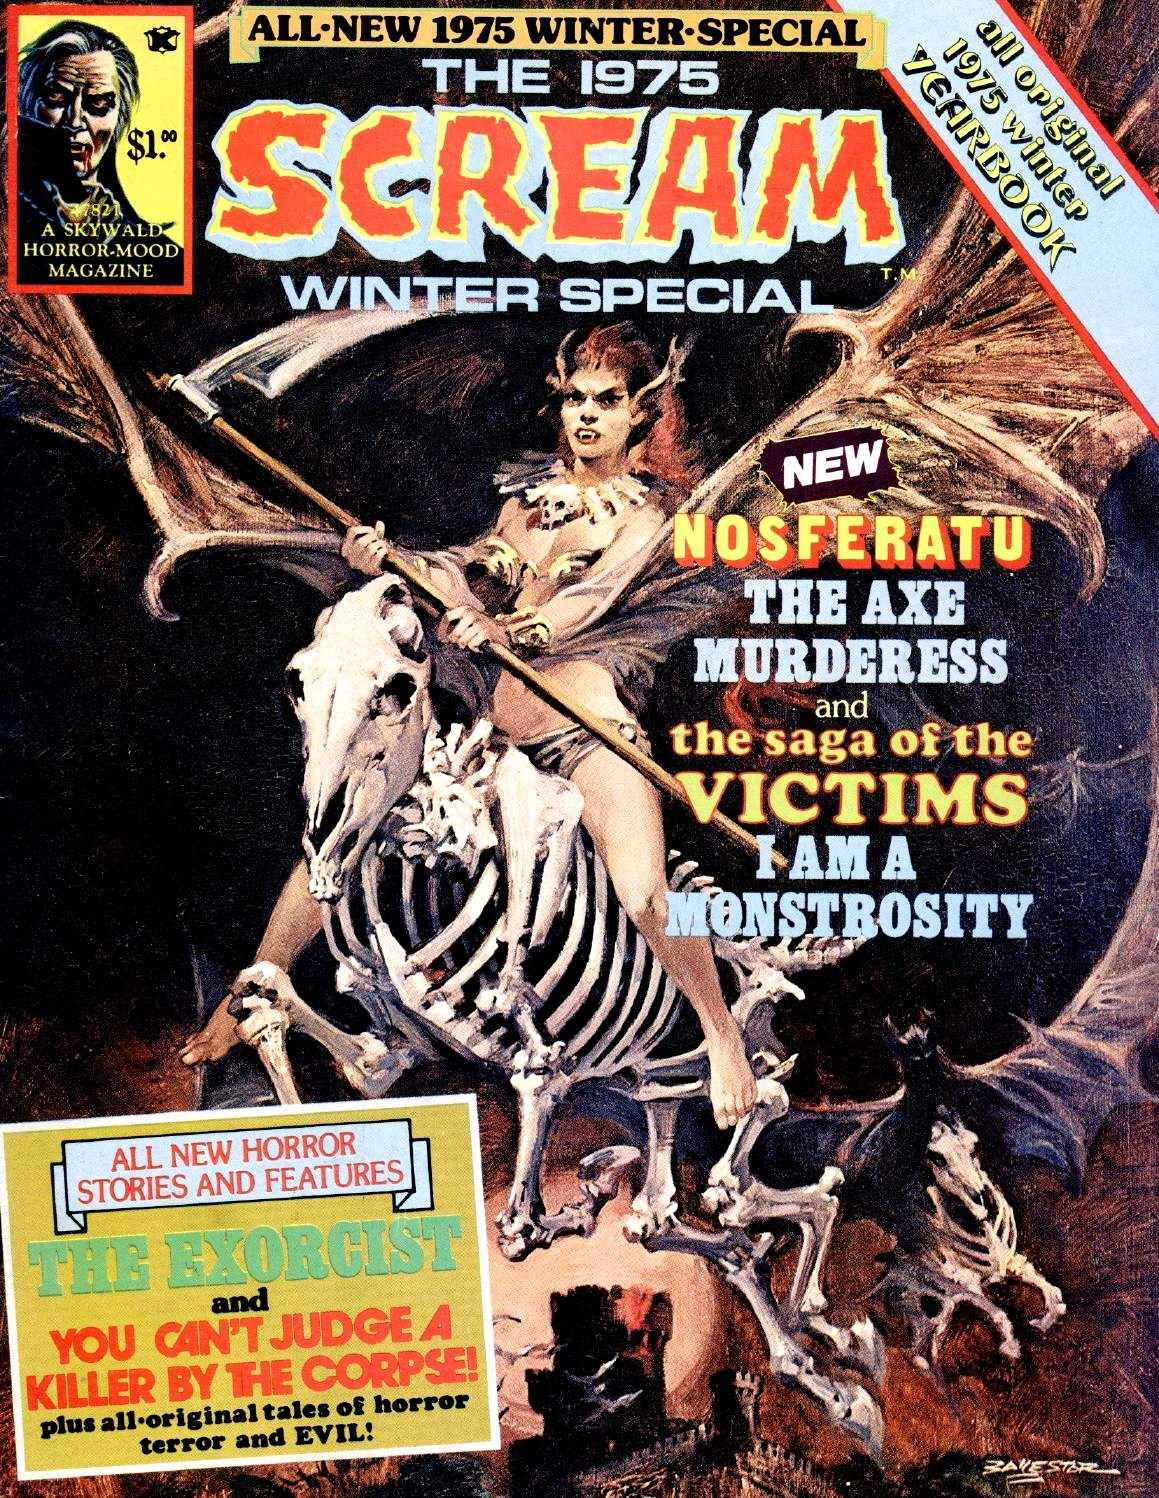 Scream Magazine, Winter Special, 1974